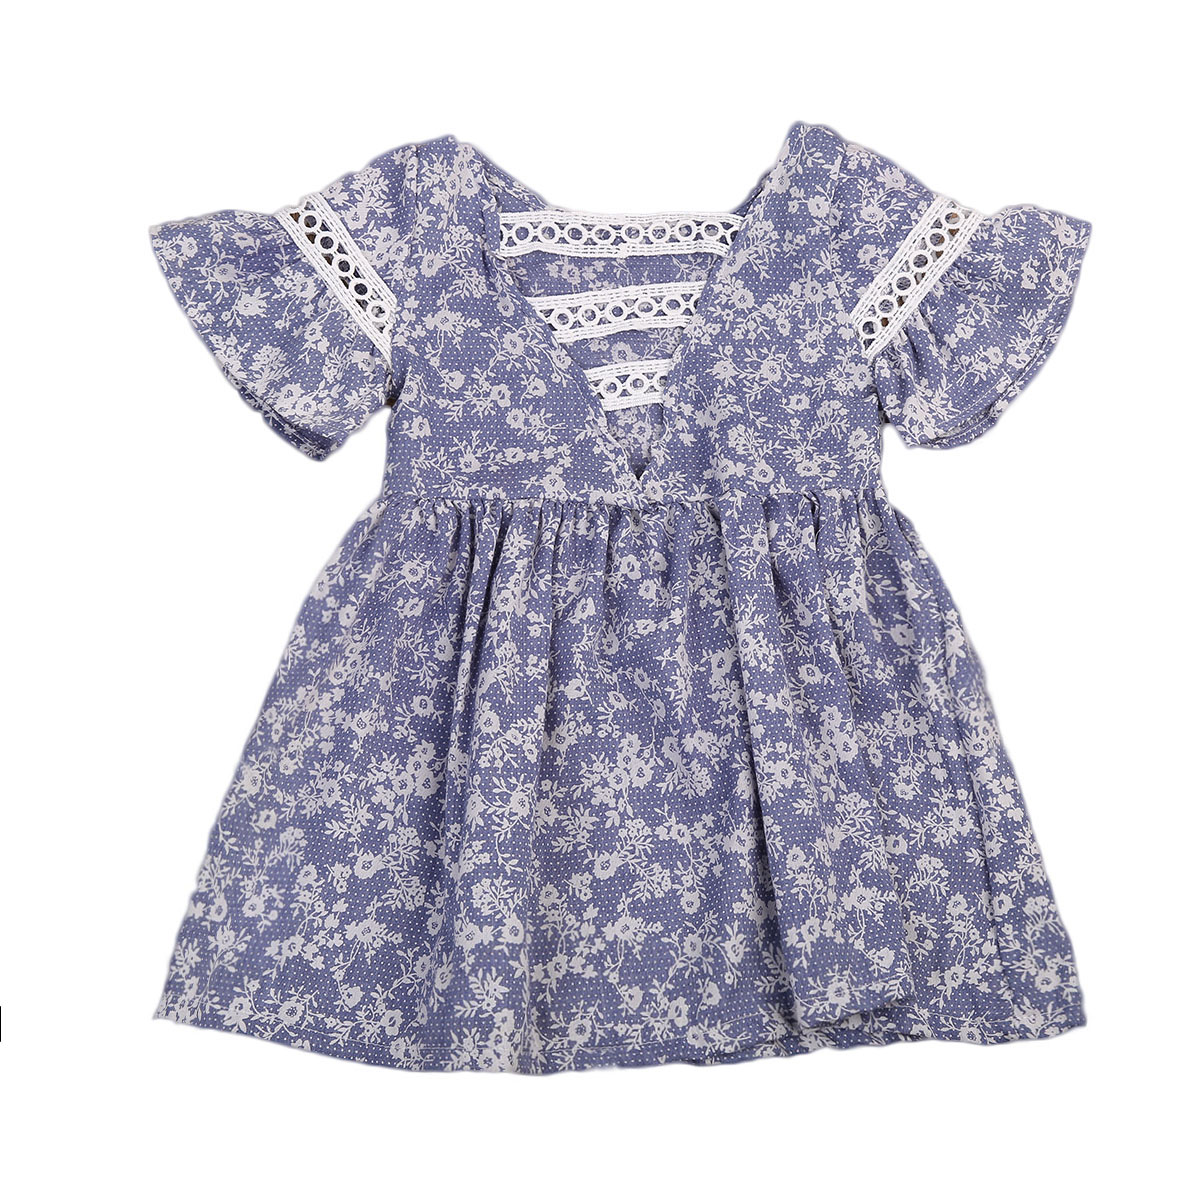 Newest Toddler Infant Child Kids Baby Girls Summer Beach Floral Lace Dress Princess Party Pageant Dresses fashion toddler girls princess dress elegant floral bow vestidos for baby girl winter infant kids cotton lace dresses